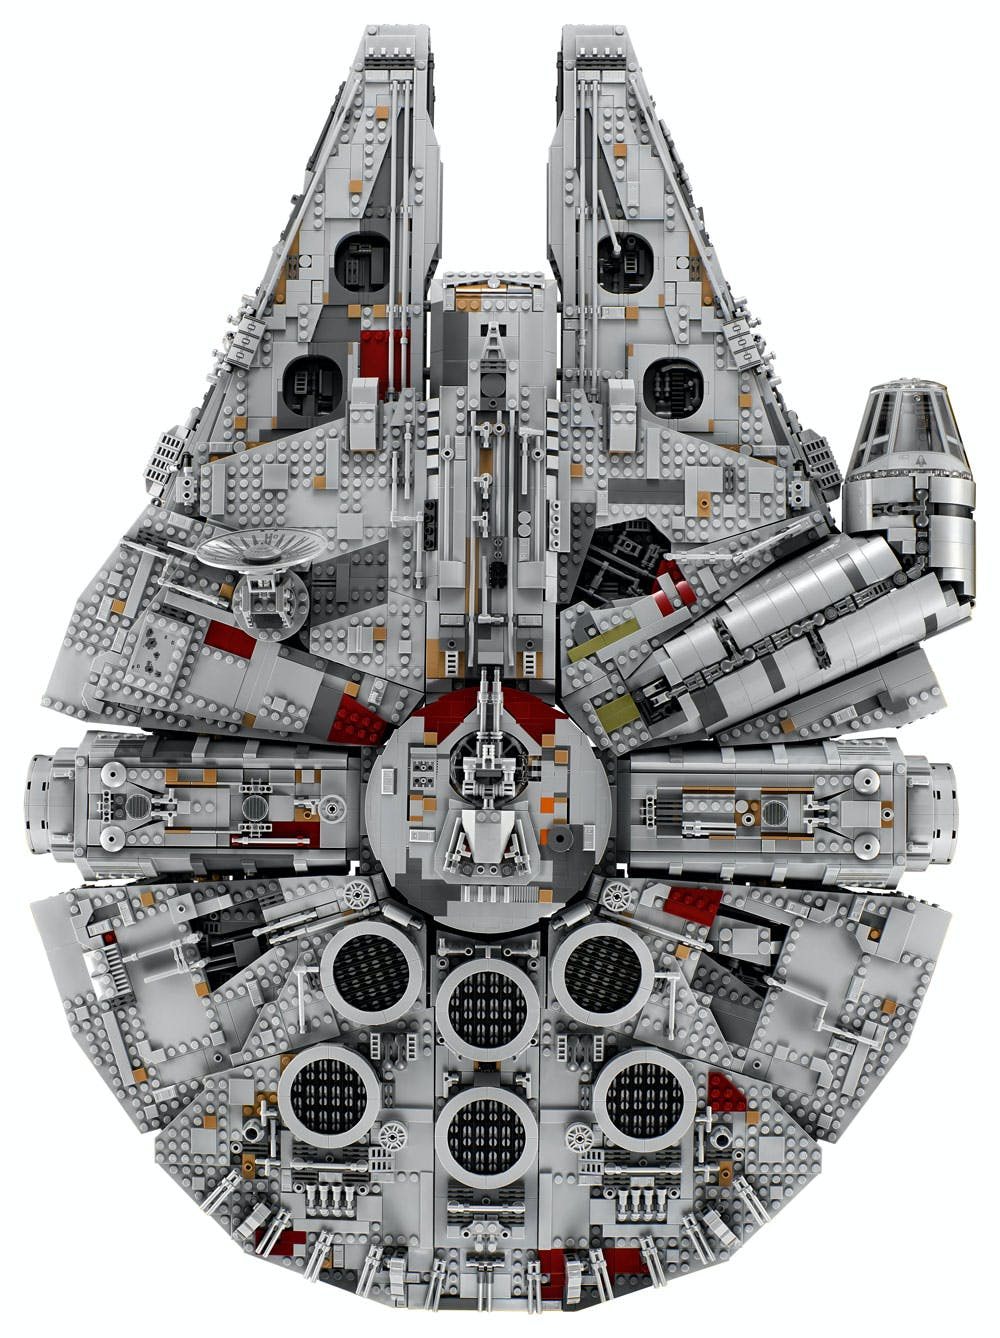 The LEGO Millennium Falcon